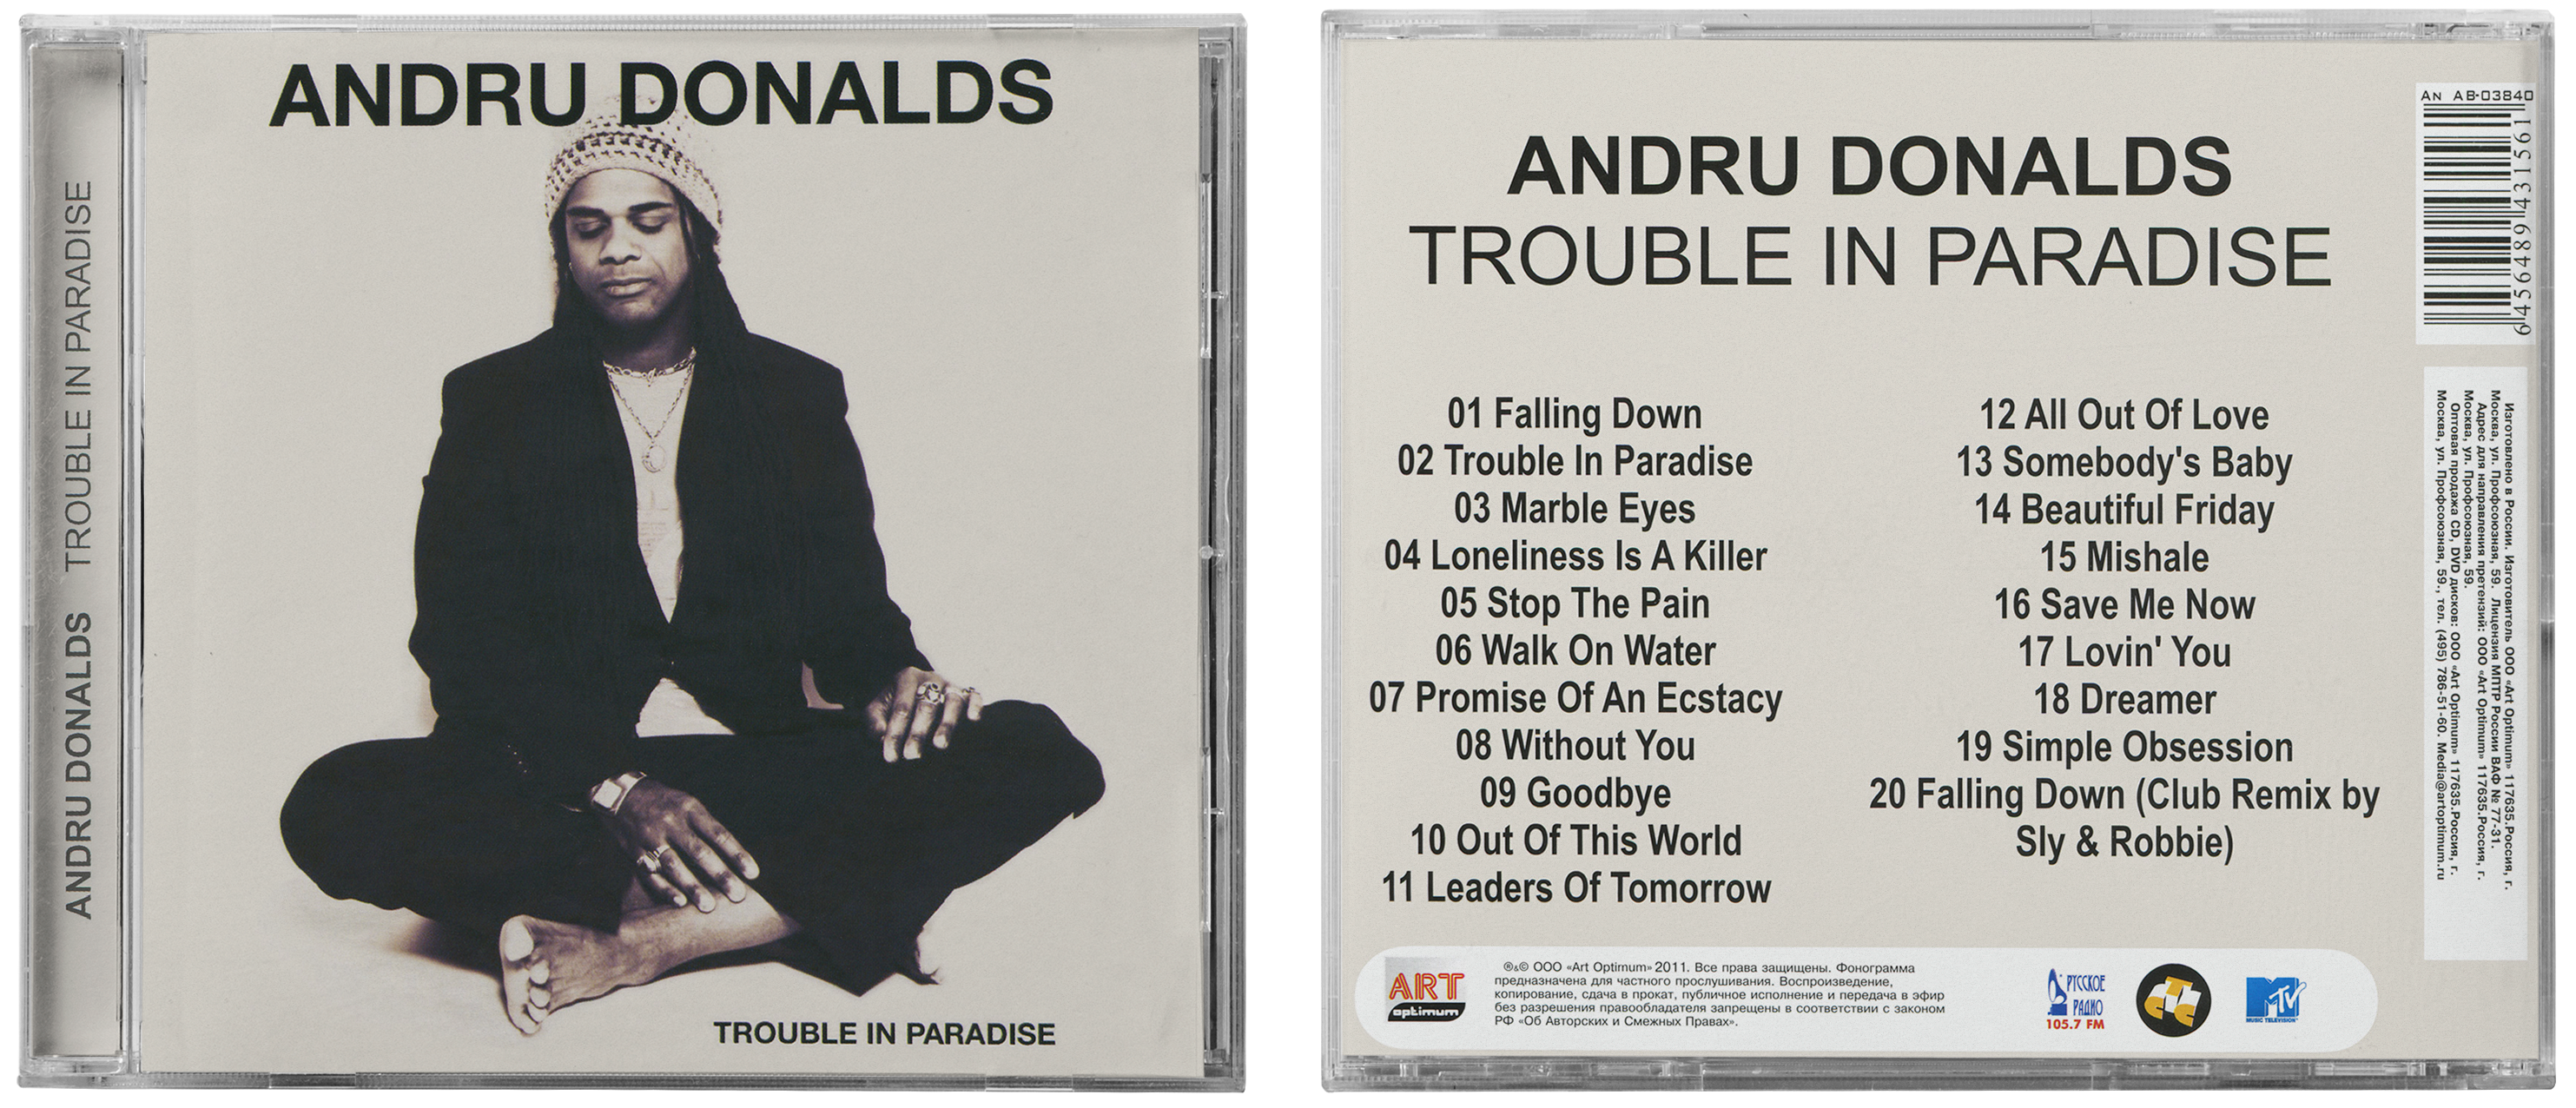 bootleg-andru-donalds-trouble-in-paradis